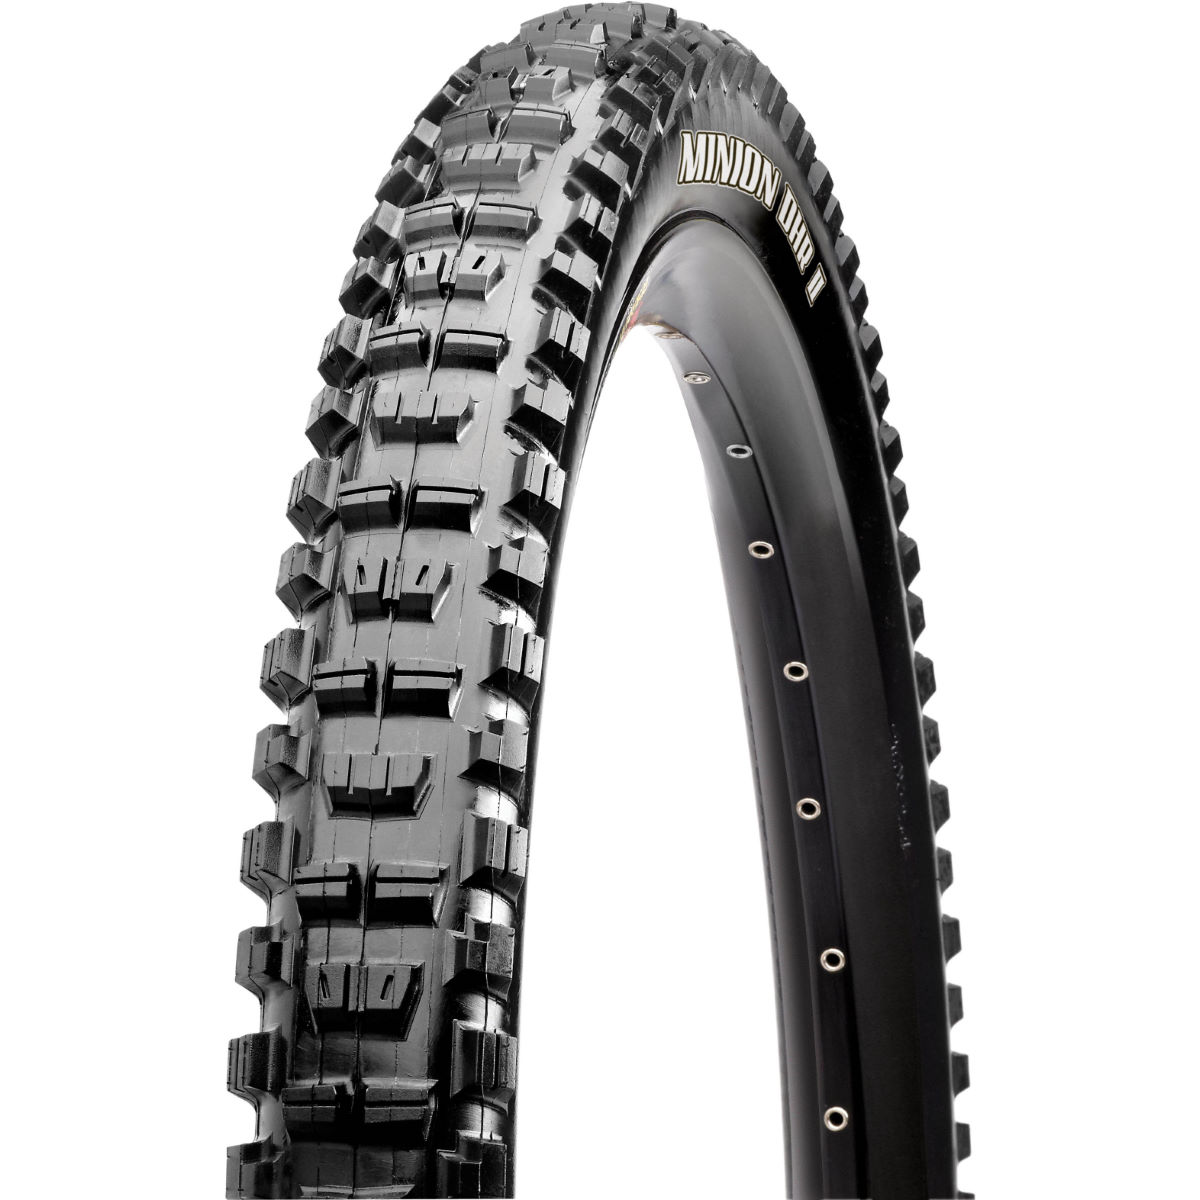 Maxxis Maxxis Minion DHR II 3C EXO TR 650B Folding Tyre   Tyres